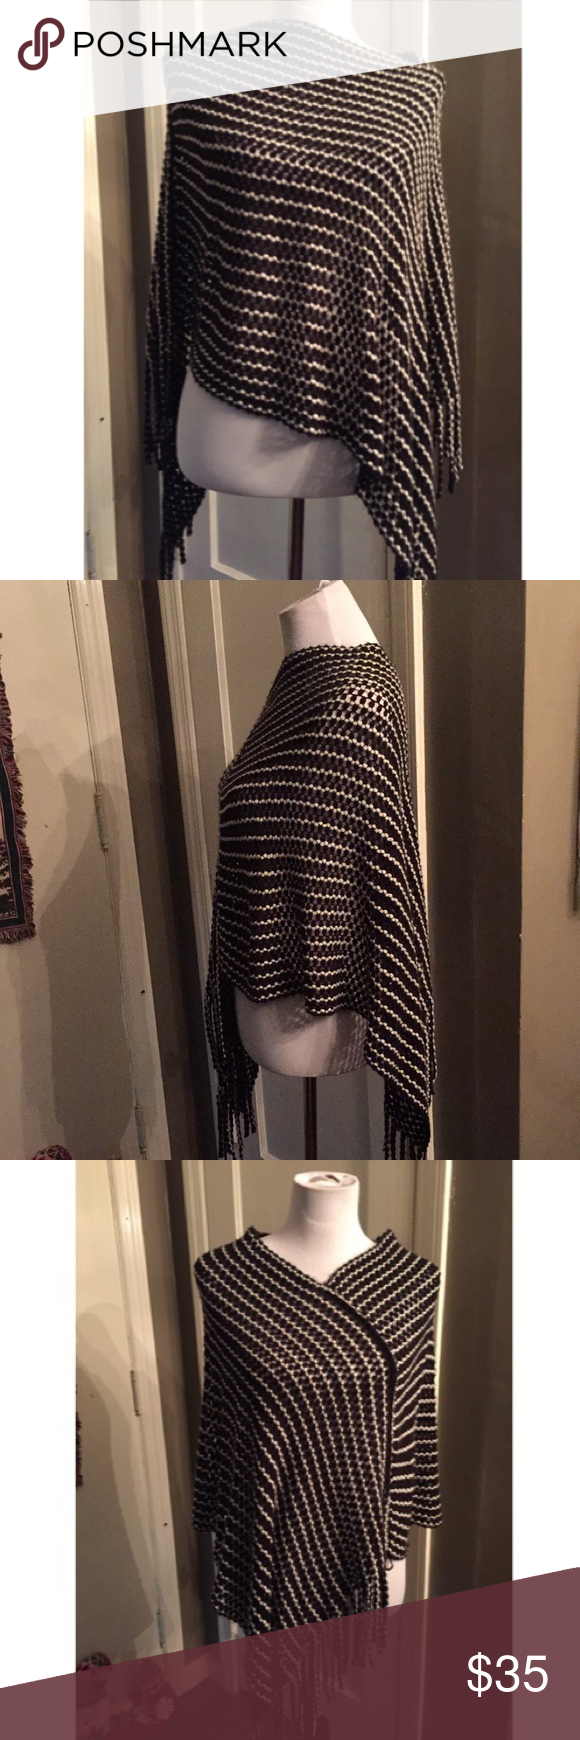 Steve Madden black/white fringed poncho OSFM Worn once. No flaws.  Black/white striped pattern with fringed hemline.  Open knit construction.  Super soft, and looks amazing with jeans or leggings, and boots.  Can be worn a bunch of different ways.  Thank so much!! Steve Madden Sweaters Shrugs & Ponchos